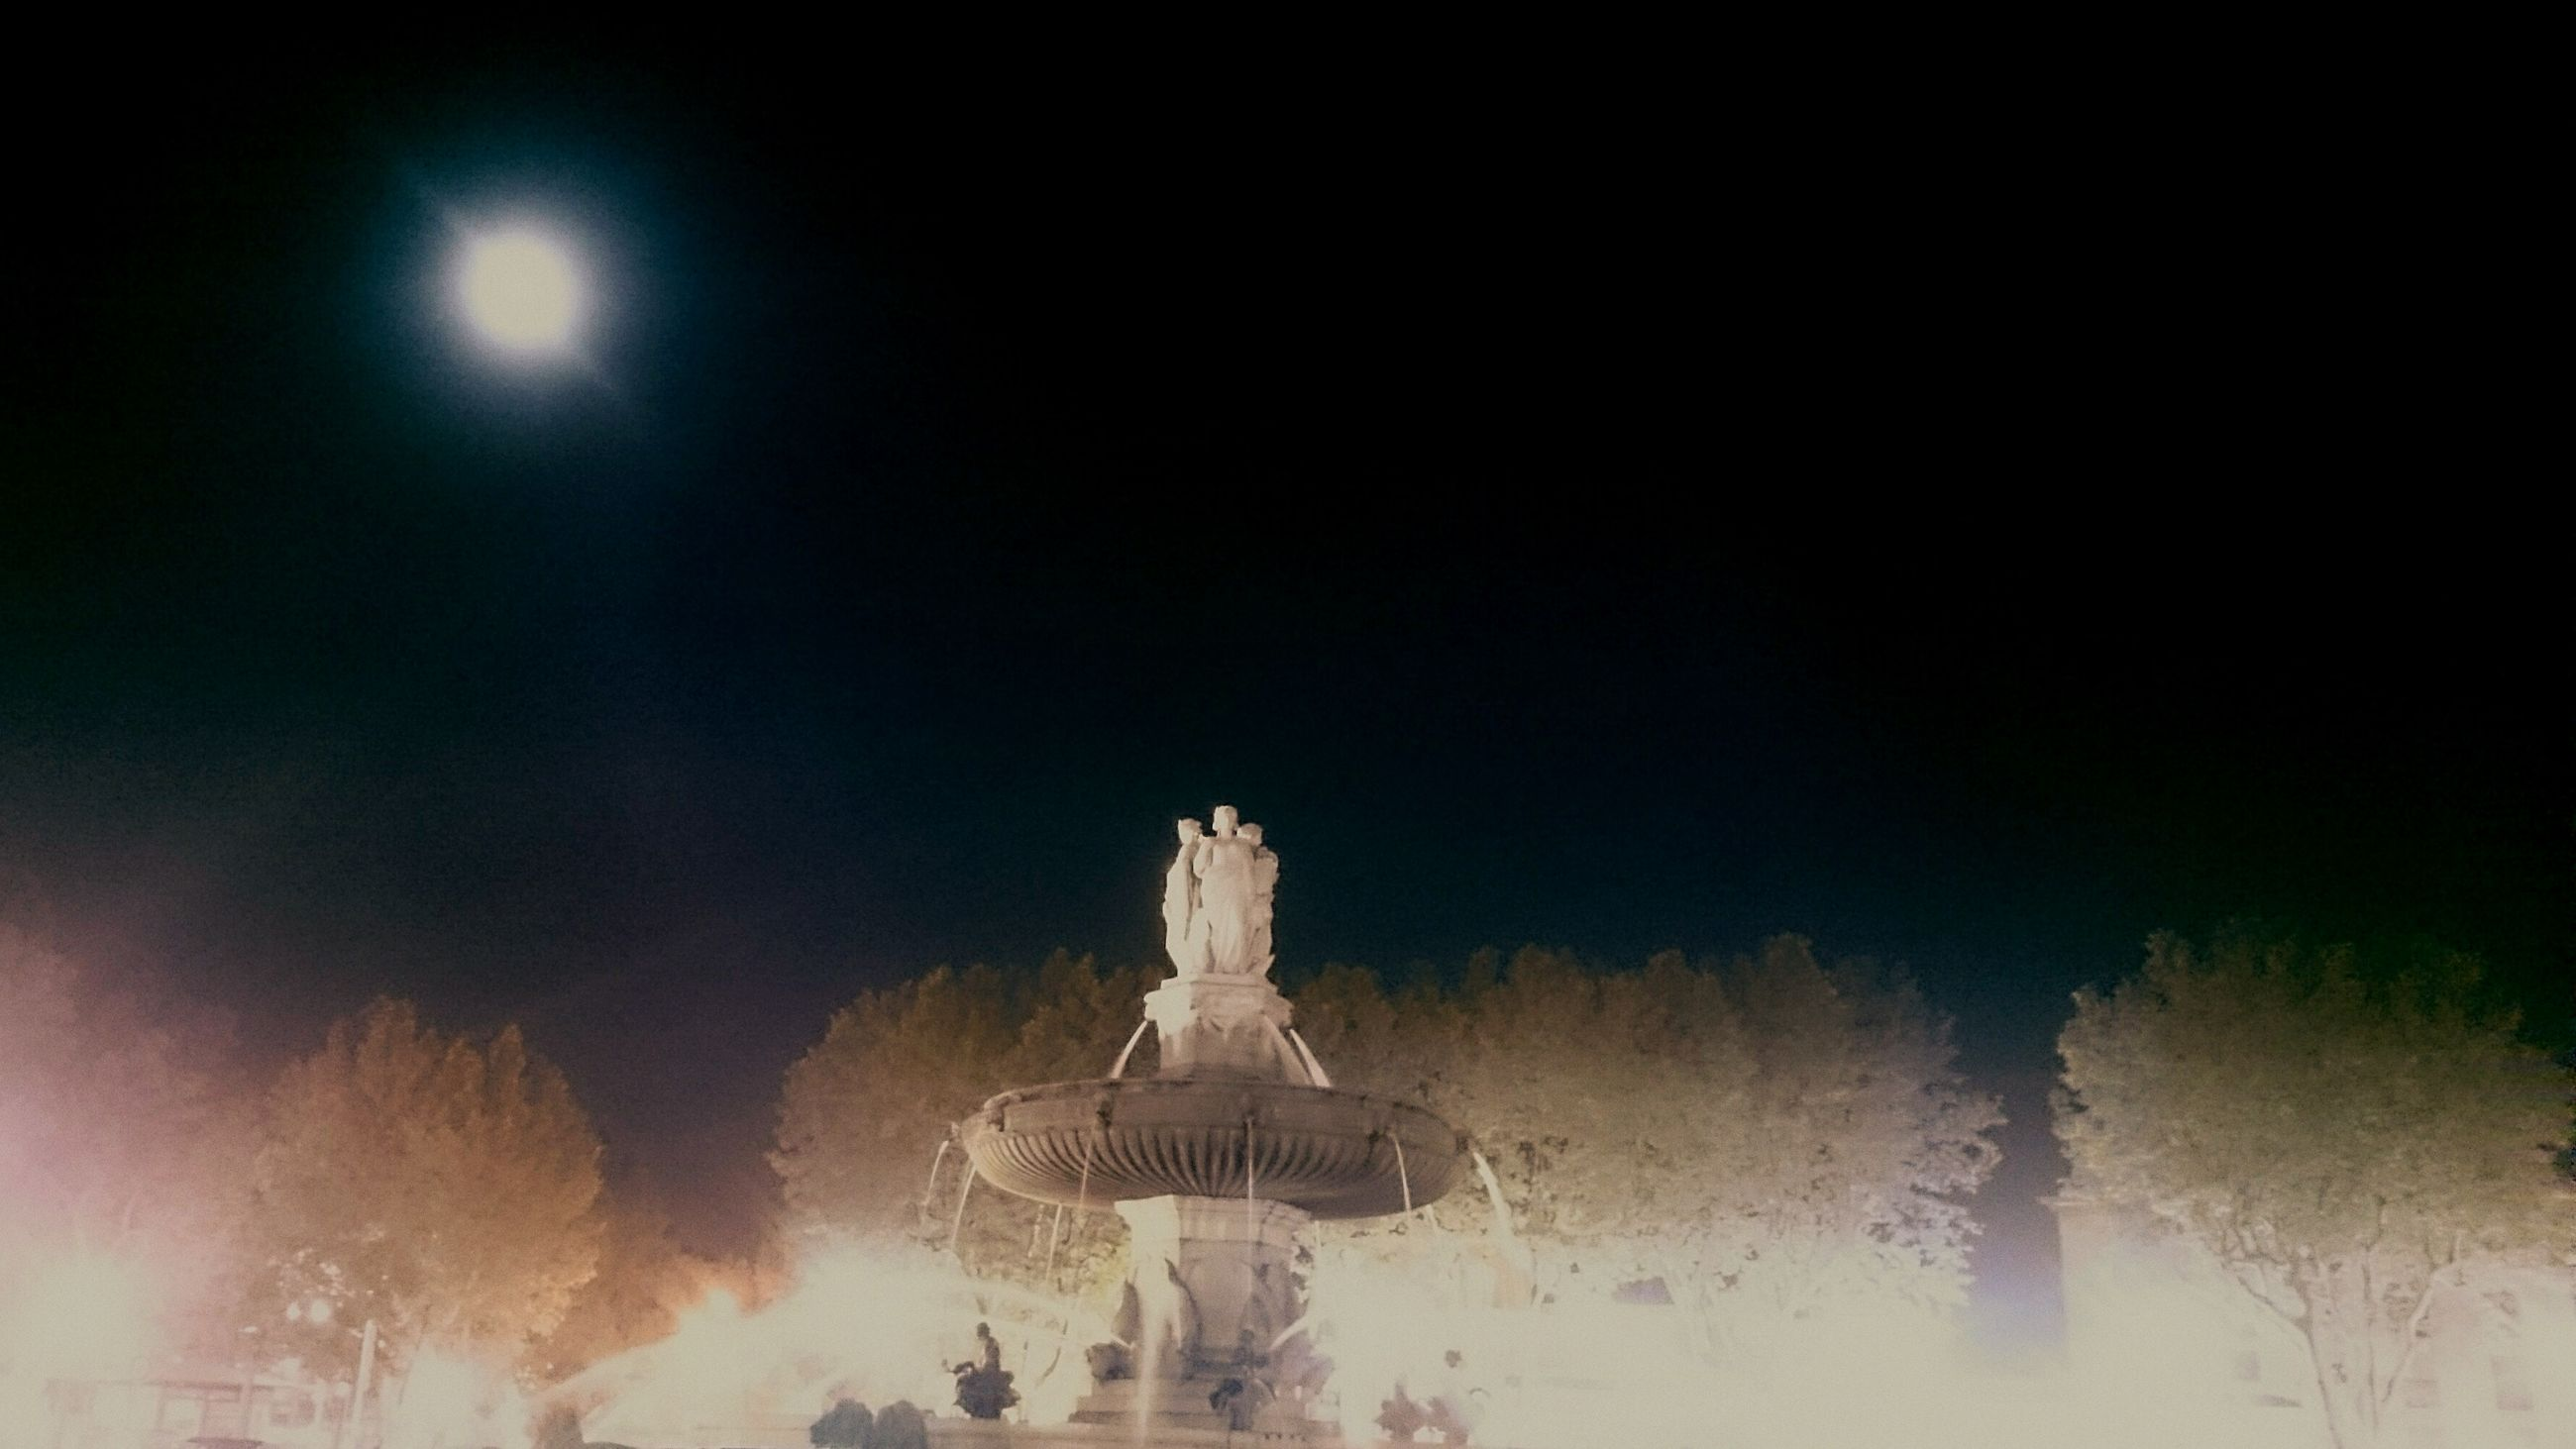 architecture, built structure, illuminated, night, religion, sculpture, building exterior, art and craft, statue, low angle view, sky, famous place, history, art, spirituality, travel destinations, water, place of worship, creativity, copy space